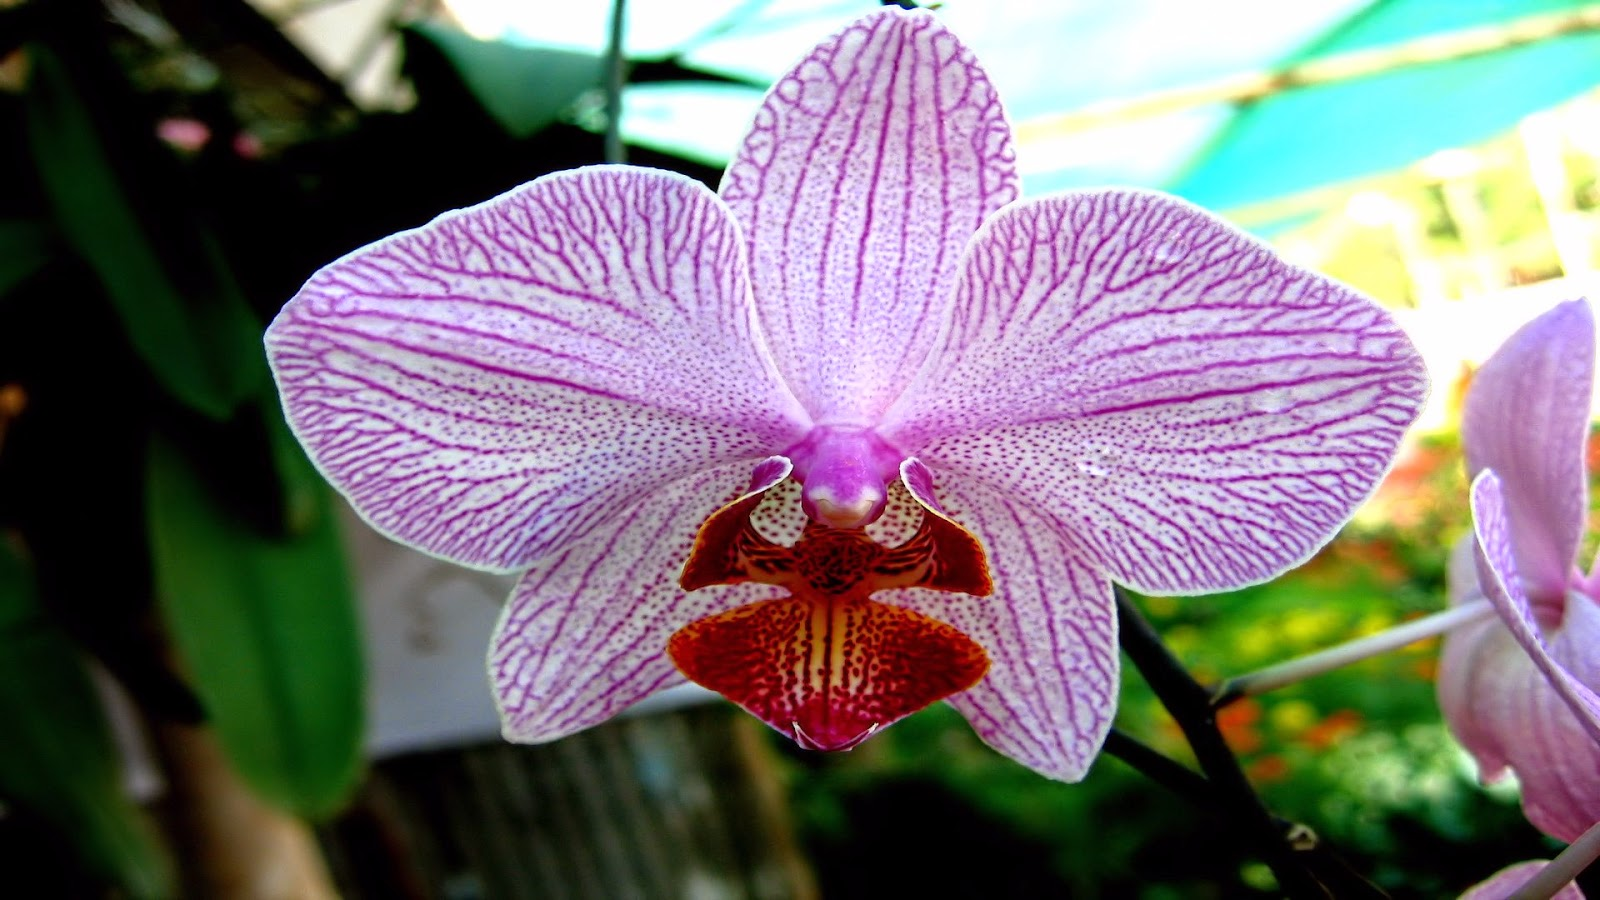 Orchid-flower-picture-single-closeup-shot-HD-photo.jpg